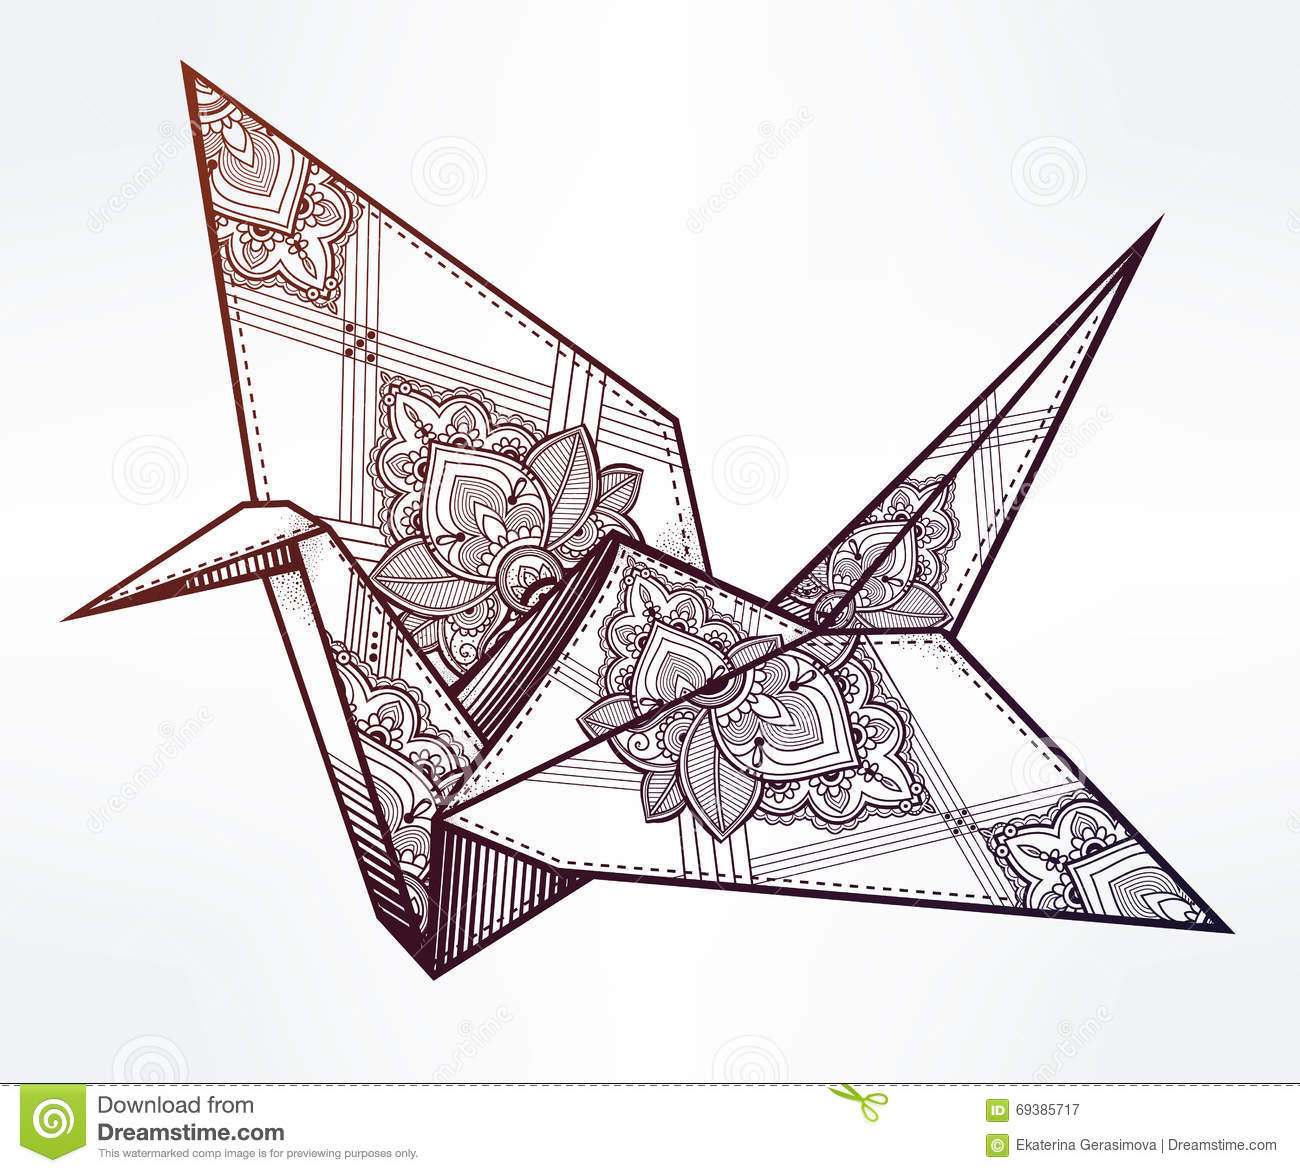 How to Make an Origami Bird Base: 13 Steps (with Pictures) | 1173x1300